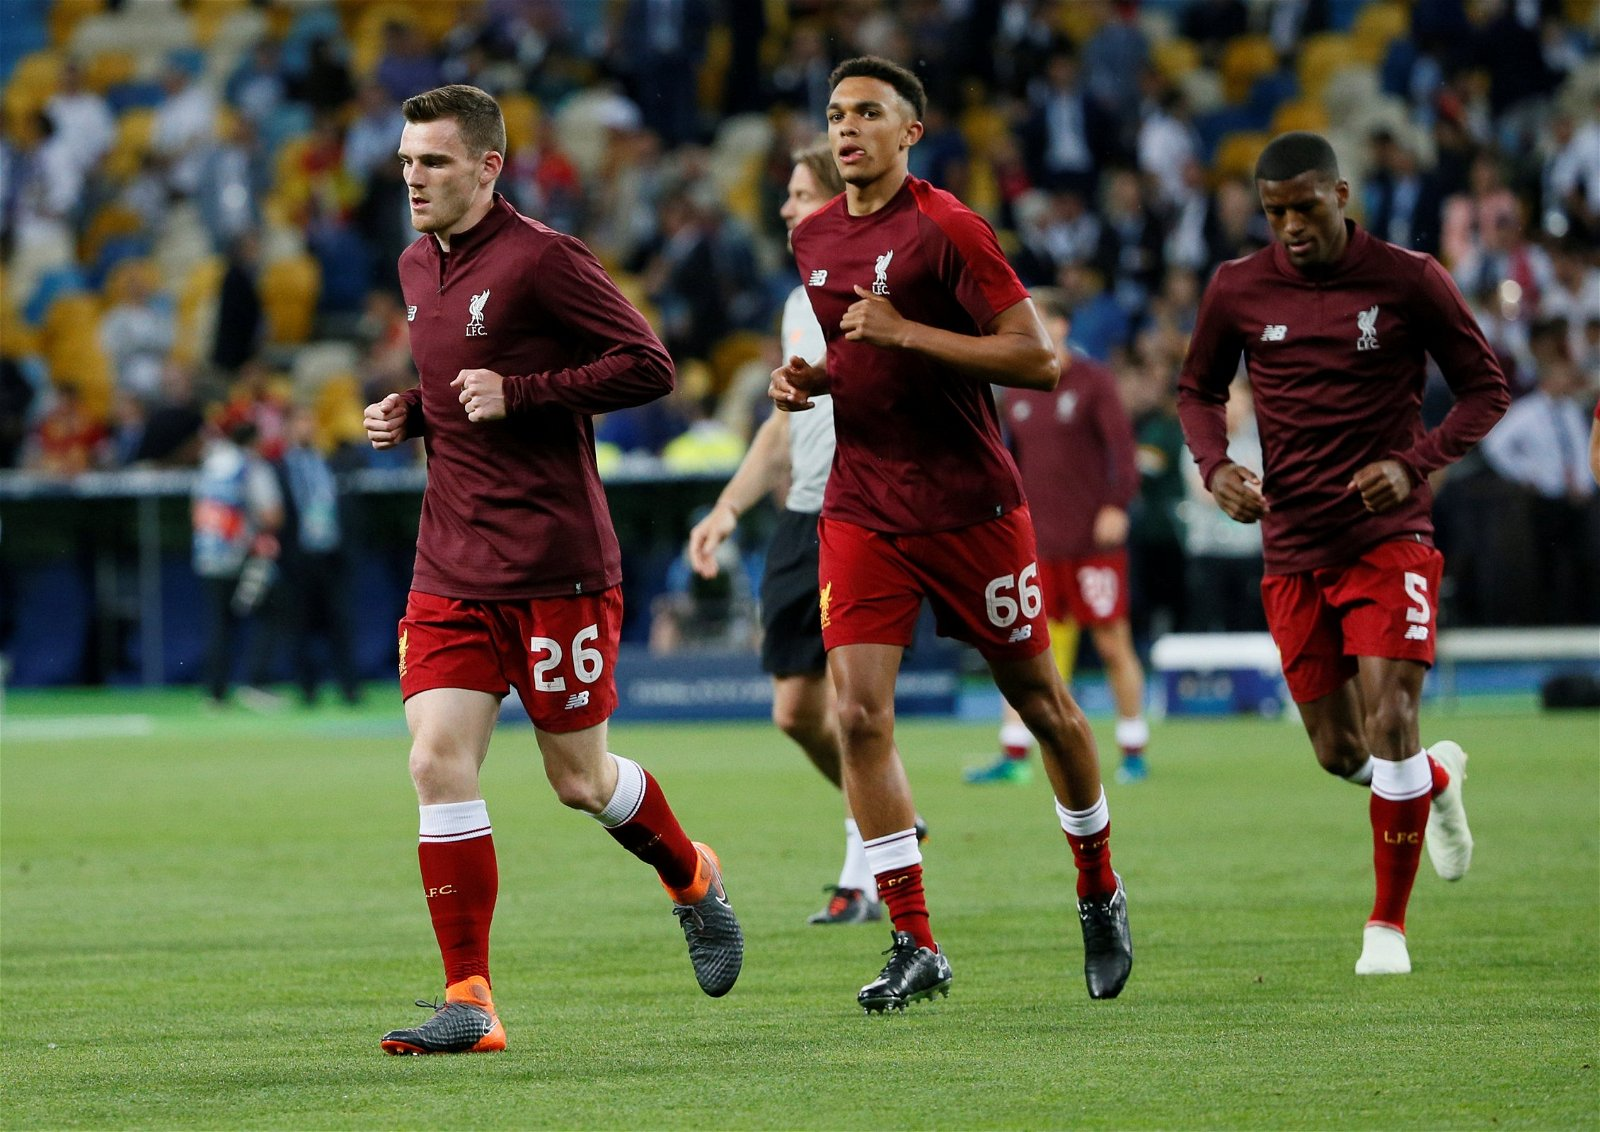 Liverpool Roundup: Alisson on his recovery, Van Dijk's message to Messi,  Riise baffled at World XI omissions | FootballFanCast.com